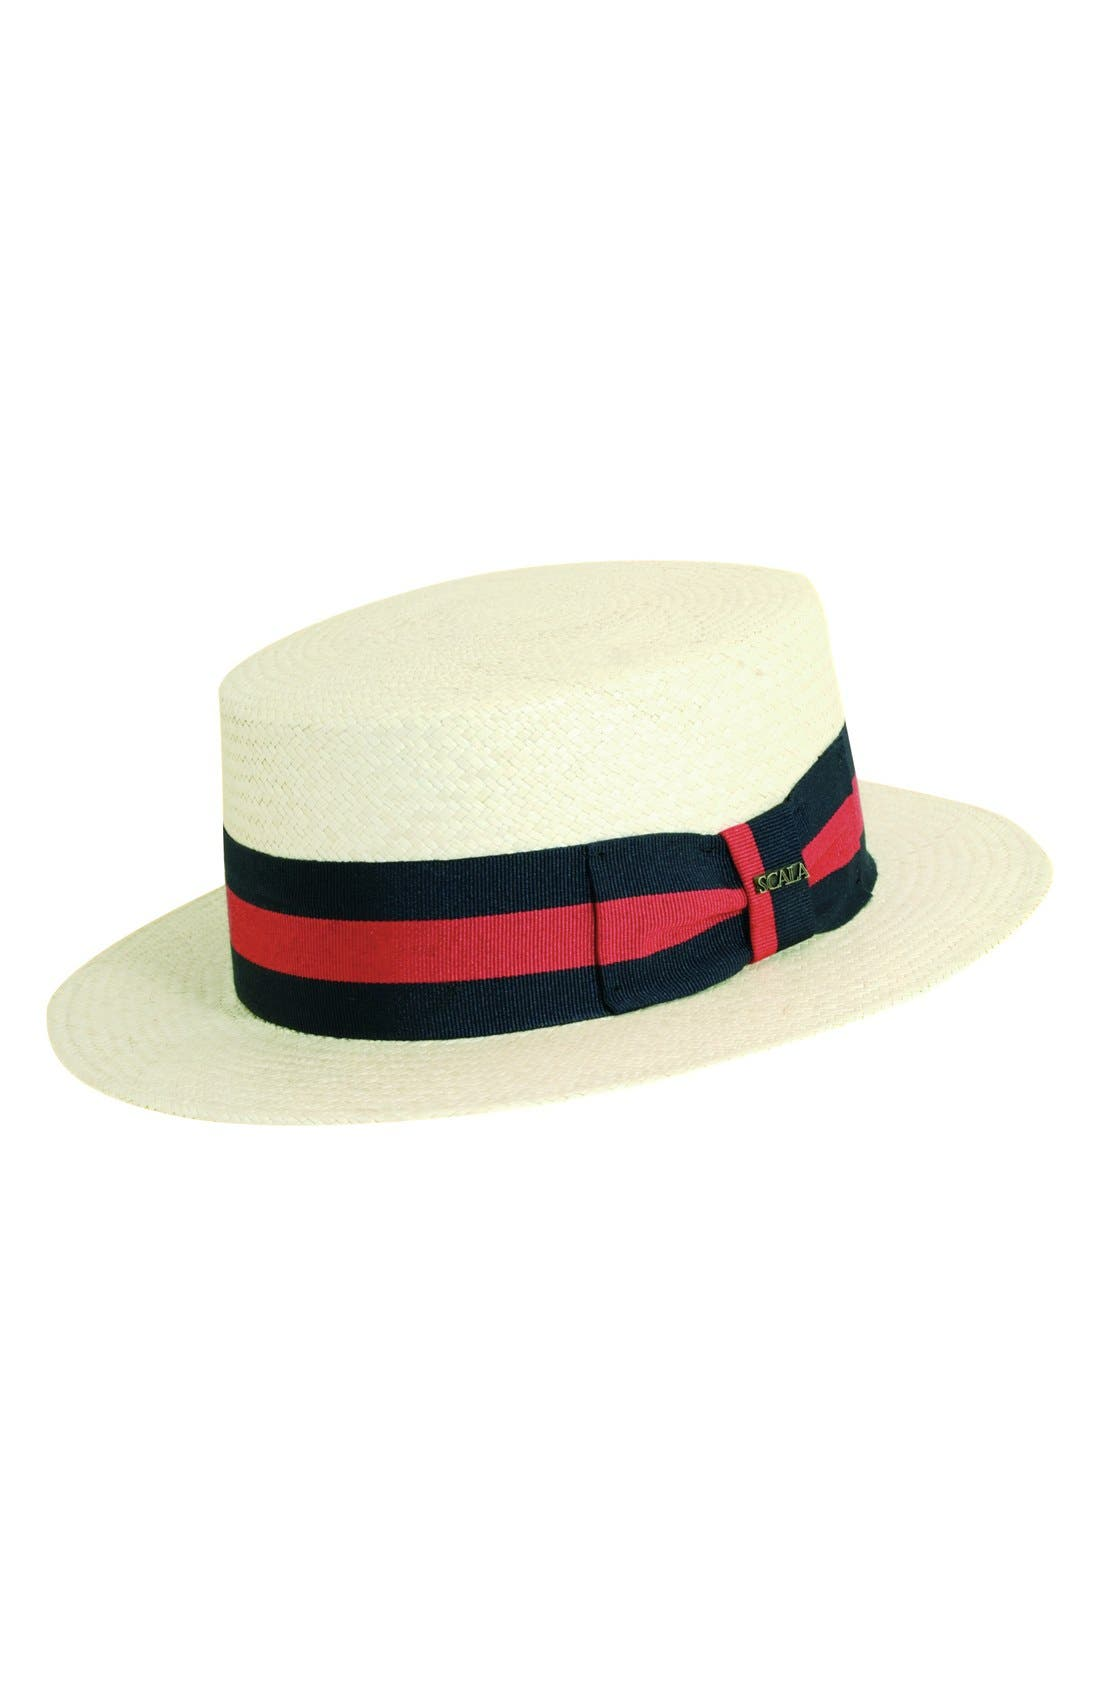 Panama Straw Boater Hat,                         Main,                         color,